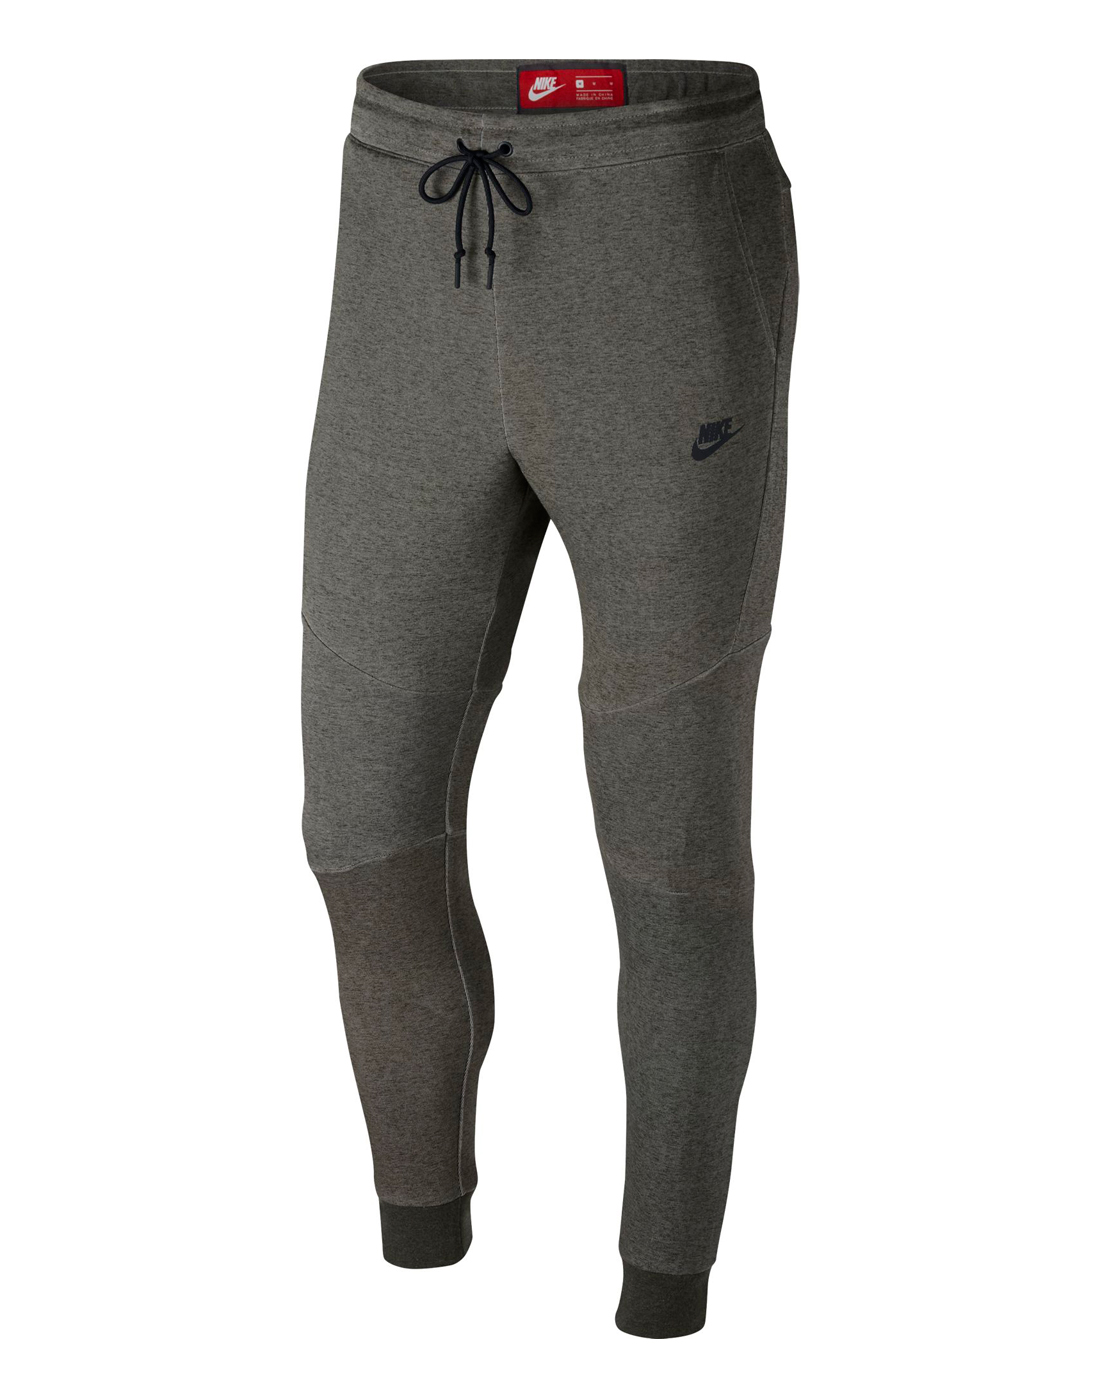 f555ac3273b5 Nike. Mens Tech Fleece Jogger. Mens Tech Fleece Jogger ...